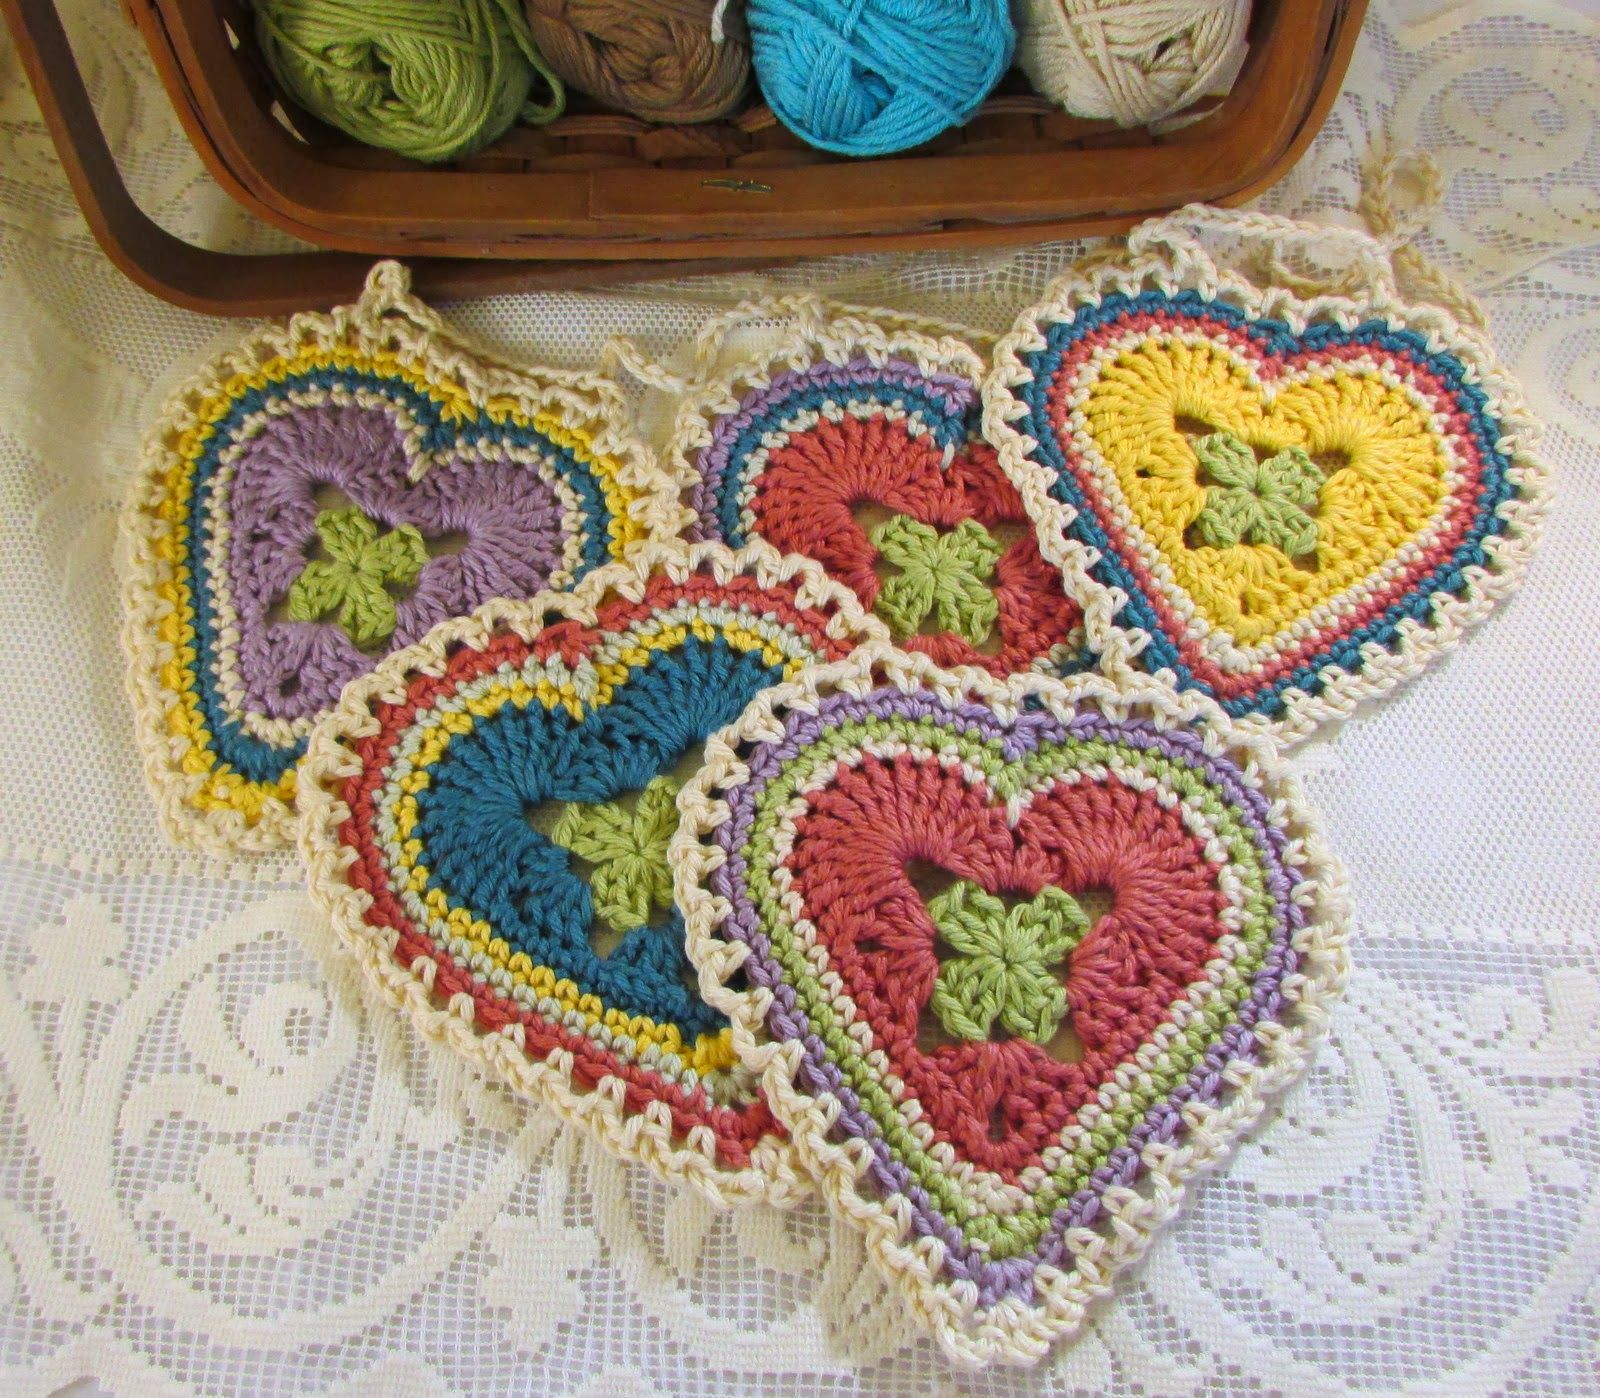 Granny sweet heart pattern nancy drew crochets heart patterns so ive been working on a crocheted heart that bankloansurffo Images